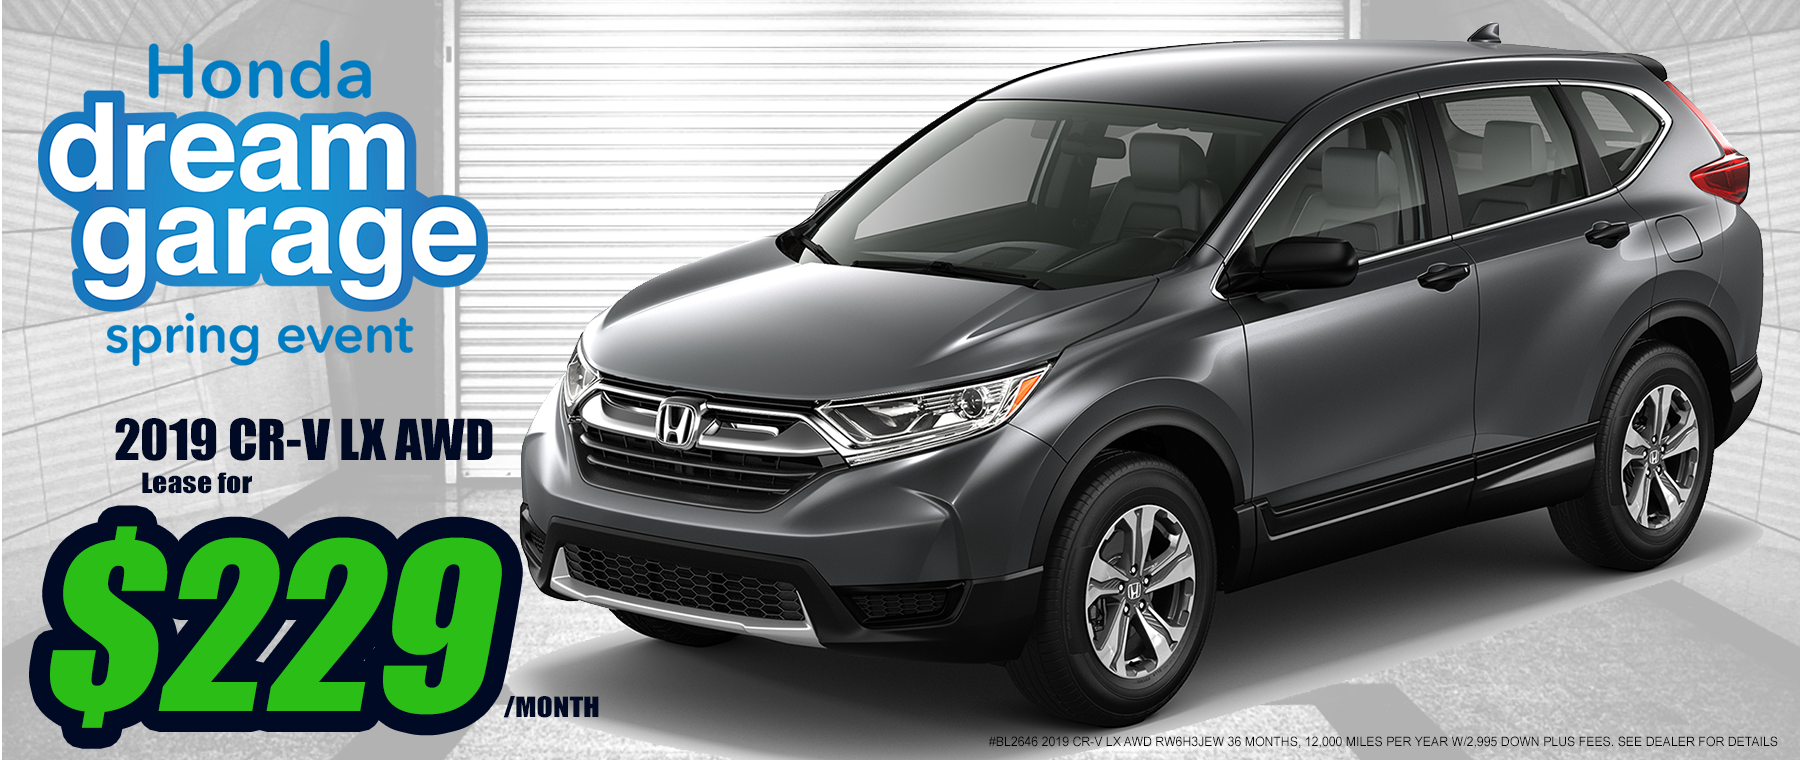 Honda Dealers In Ct >> Ct Honda Dealers Honda Worldwide History Holding All Honda